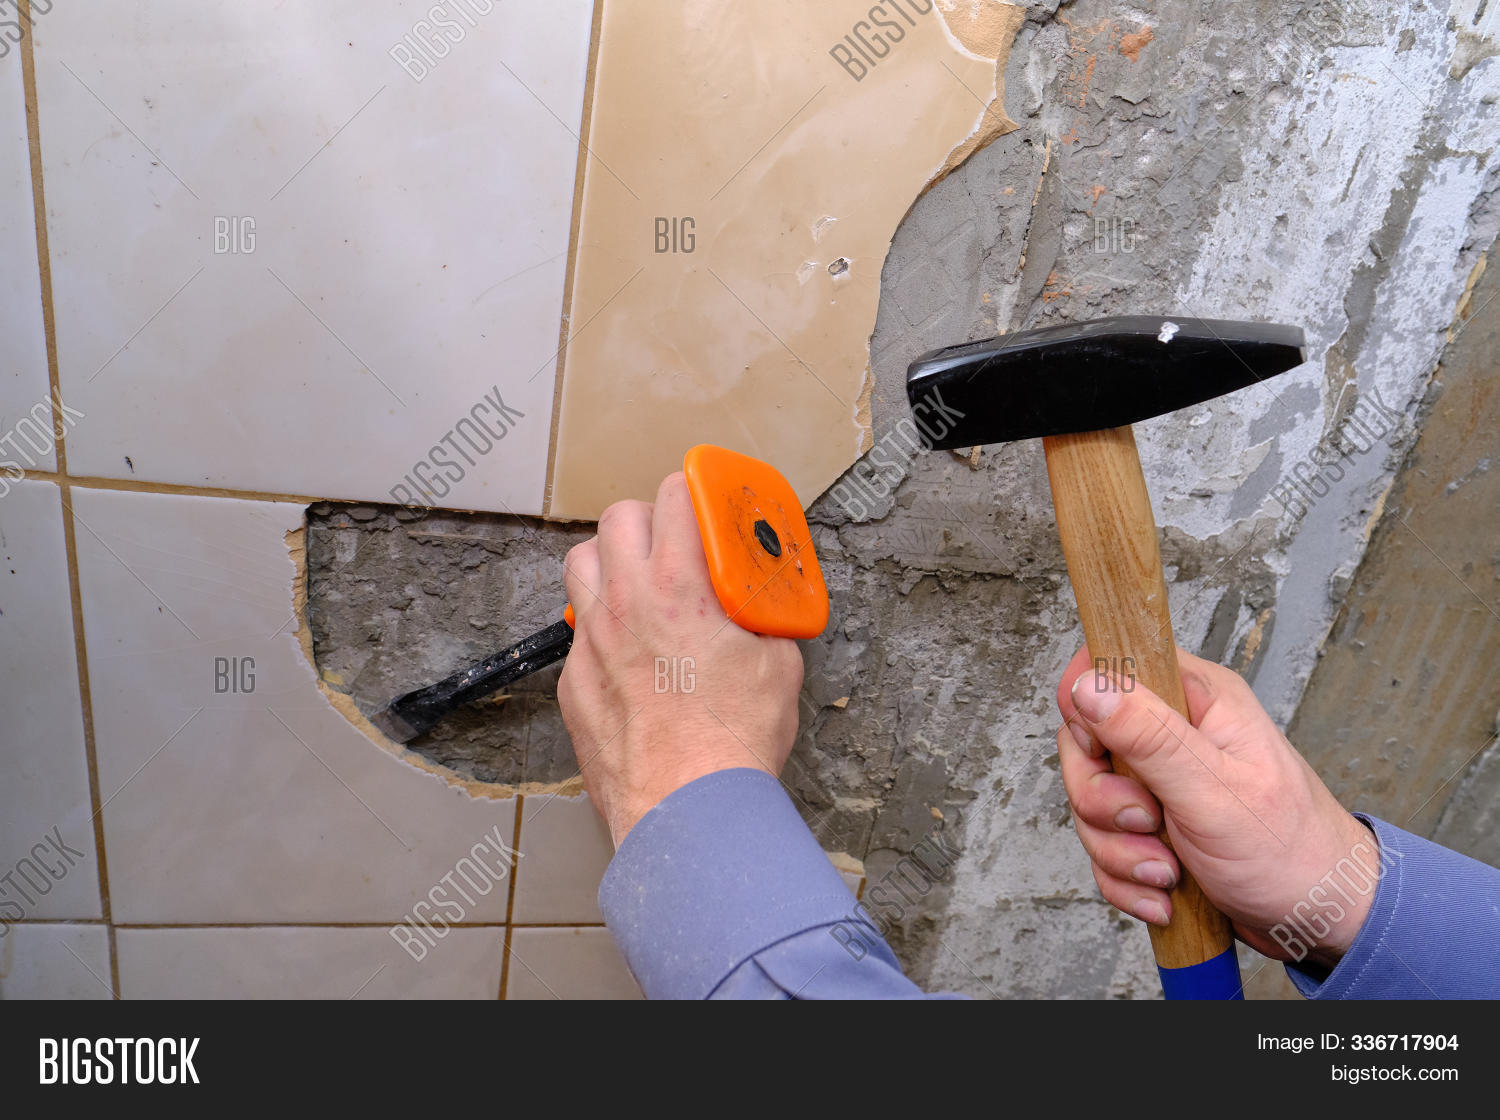 Removing Old Tiles Image Photo Free Trial Bigstock